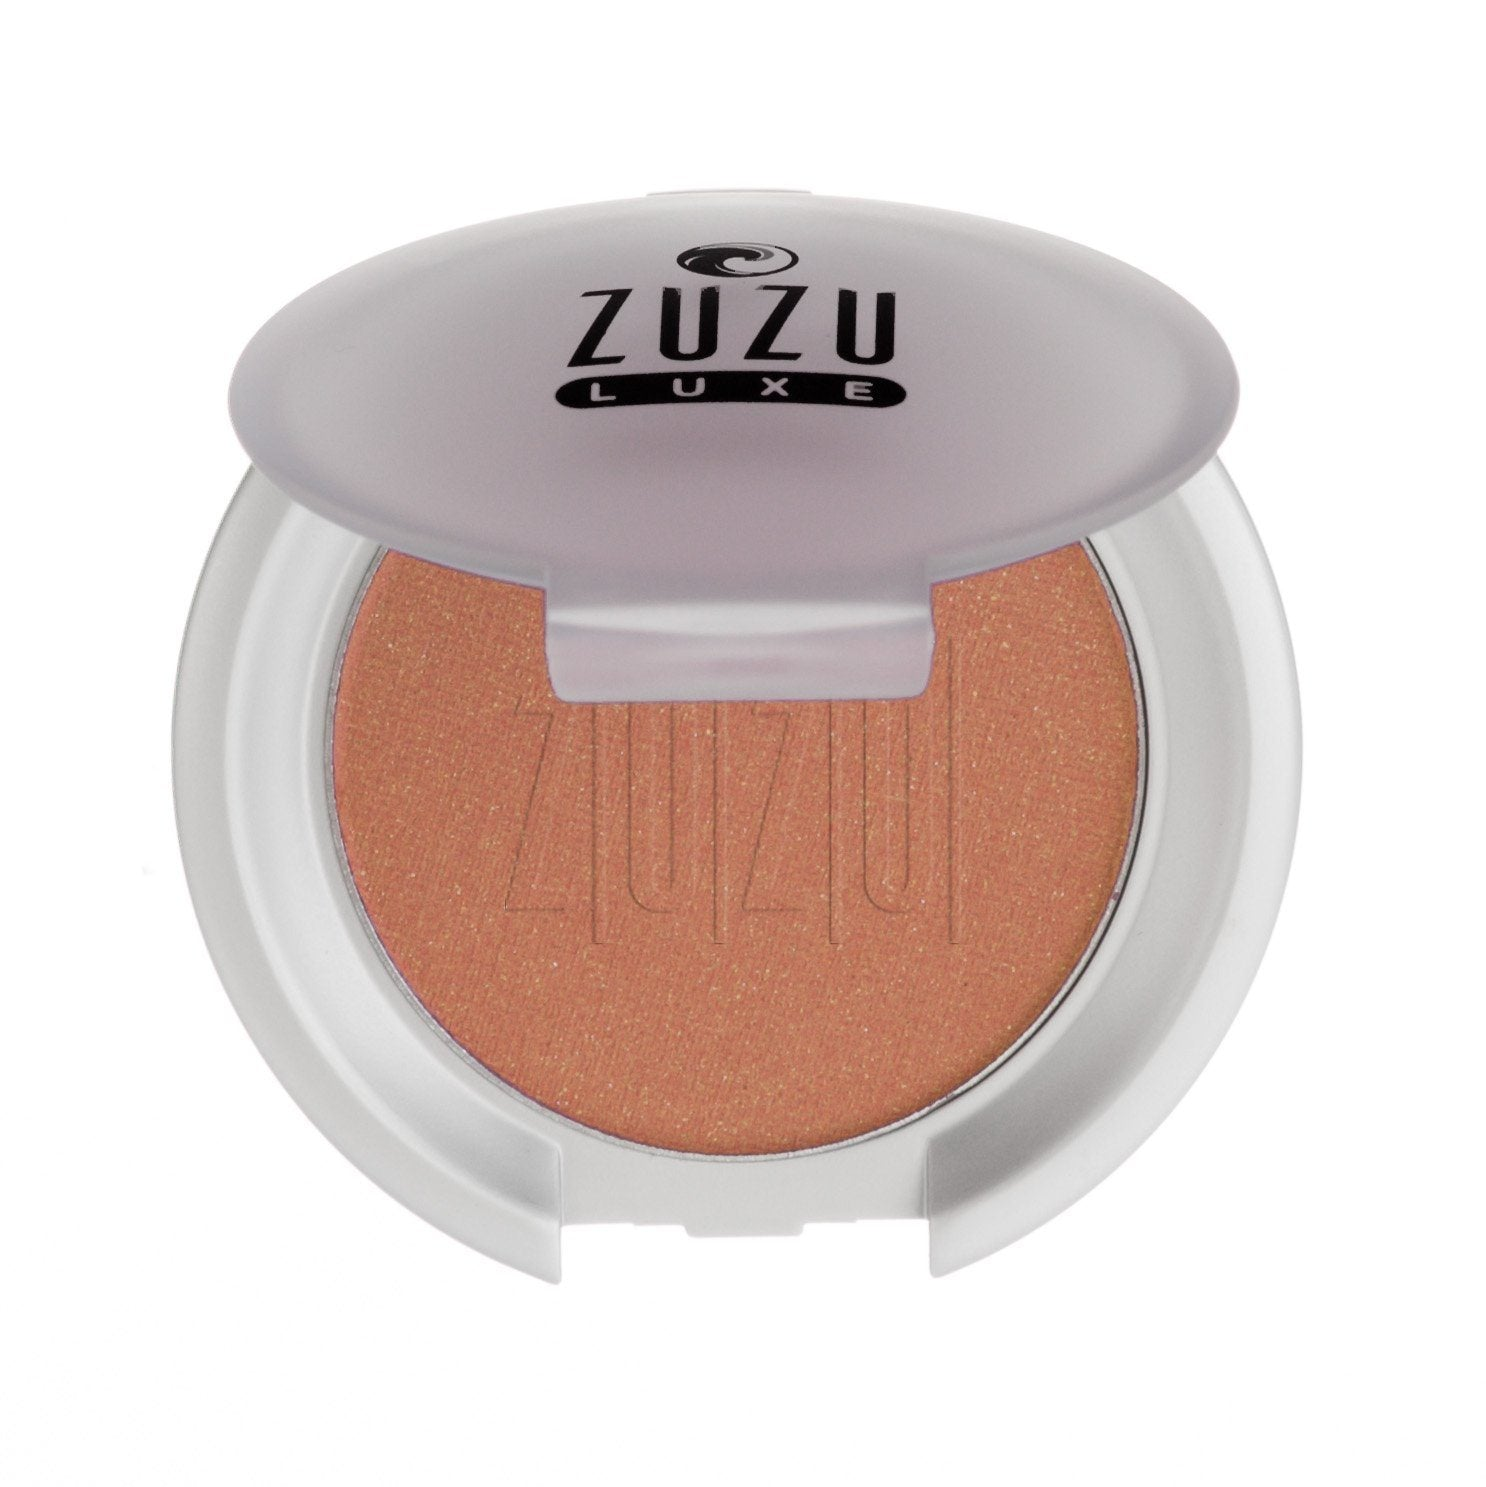 Beauty & Skin Care,Food & Drink - Zuzu Luxe - Gluten Free Blush, Bella Donna